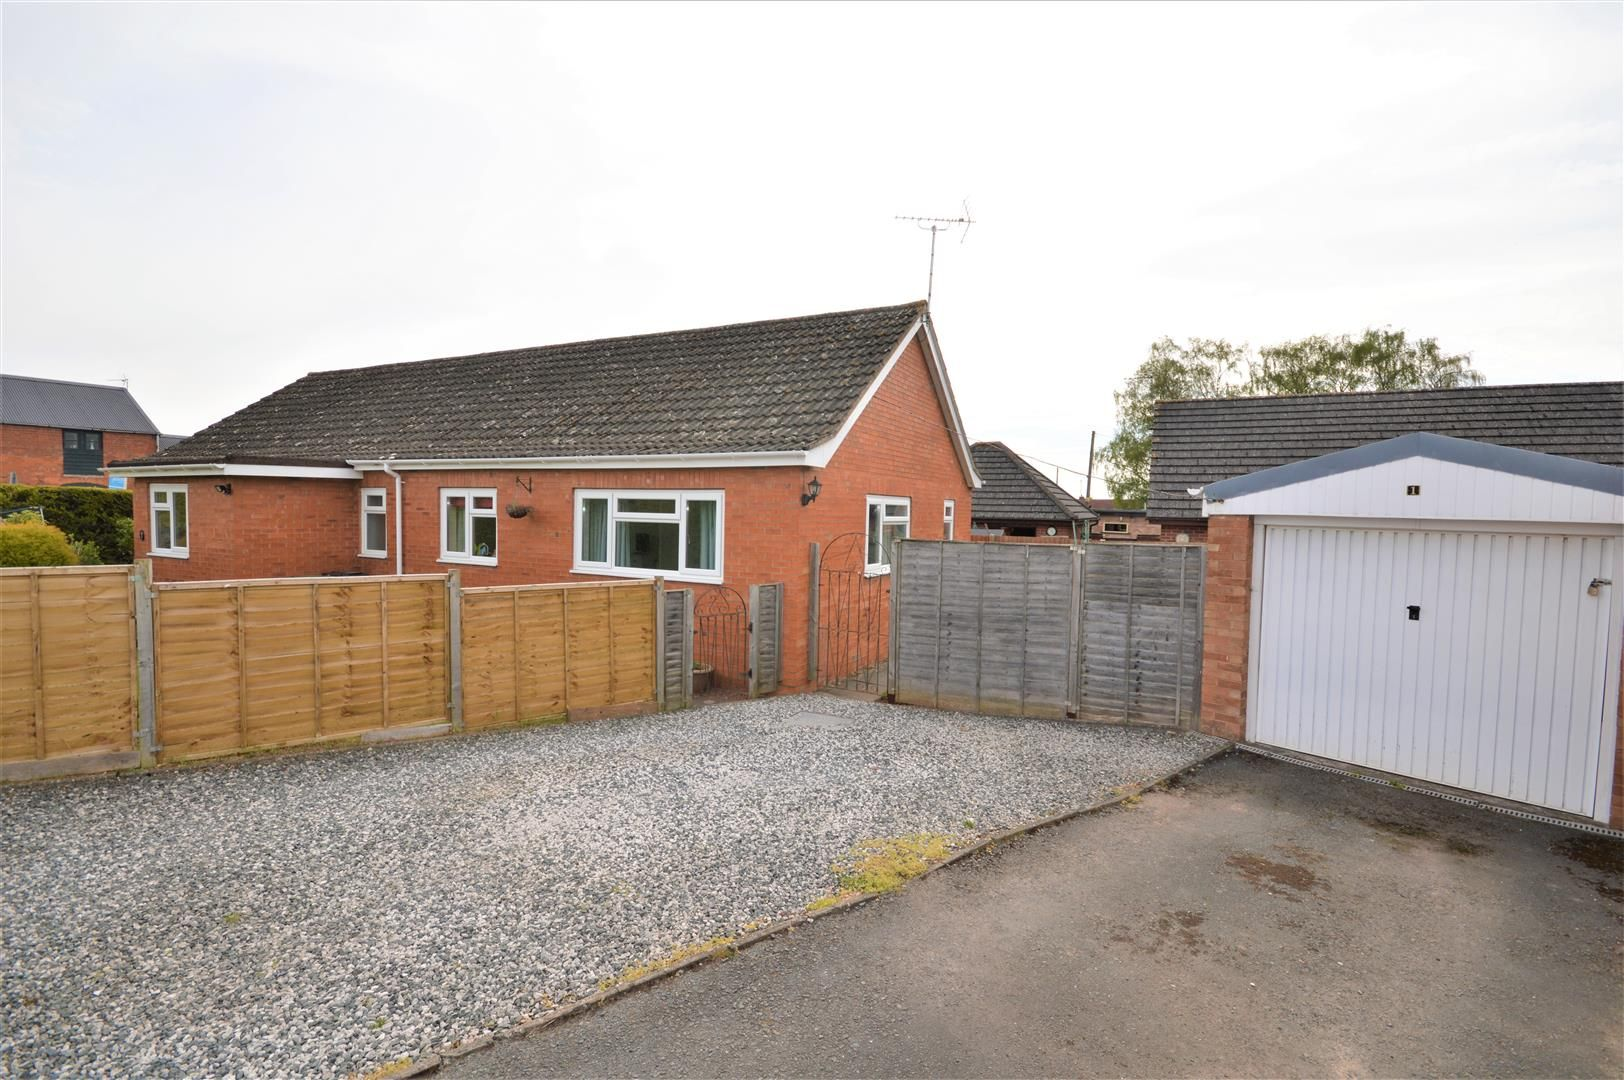 4 bed detached-bungalow for sale in Marden 3